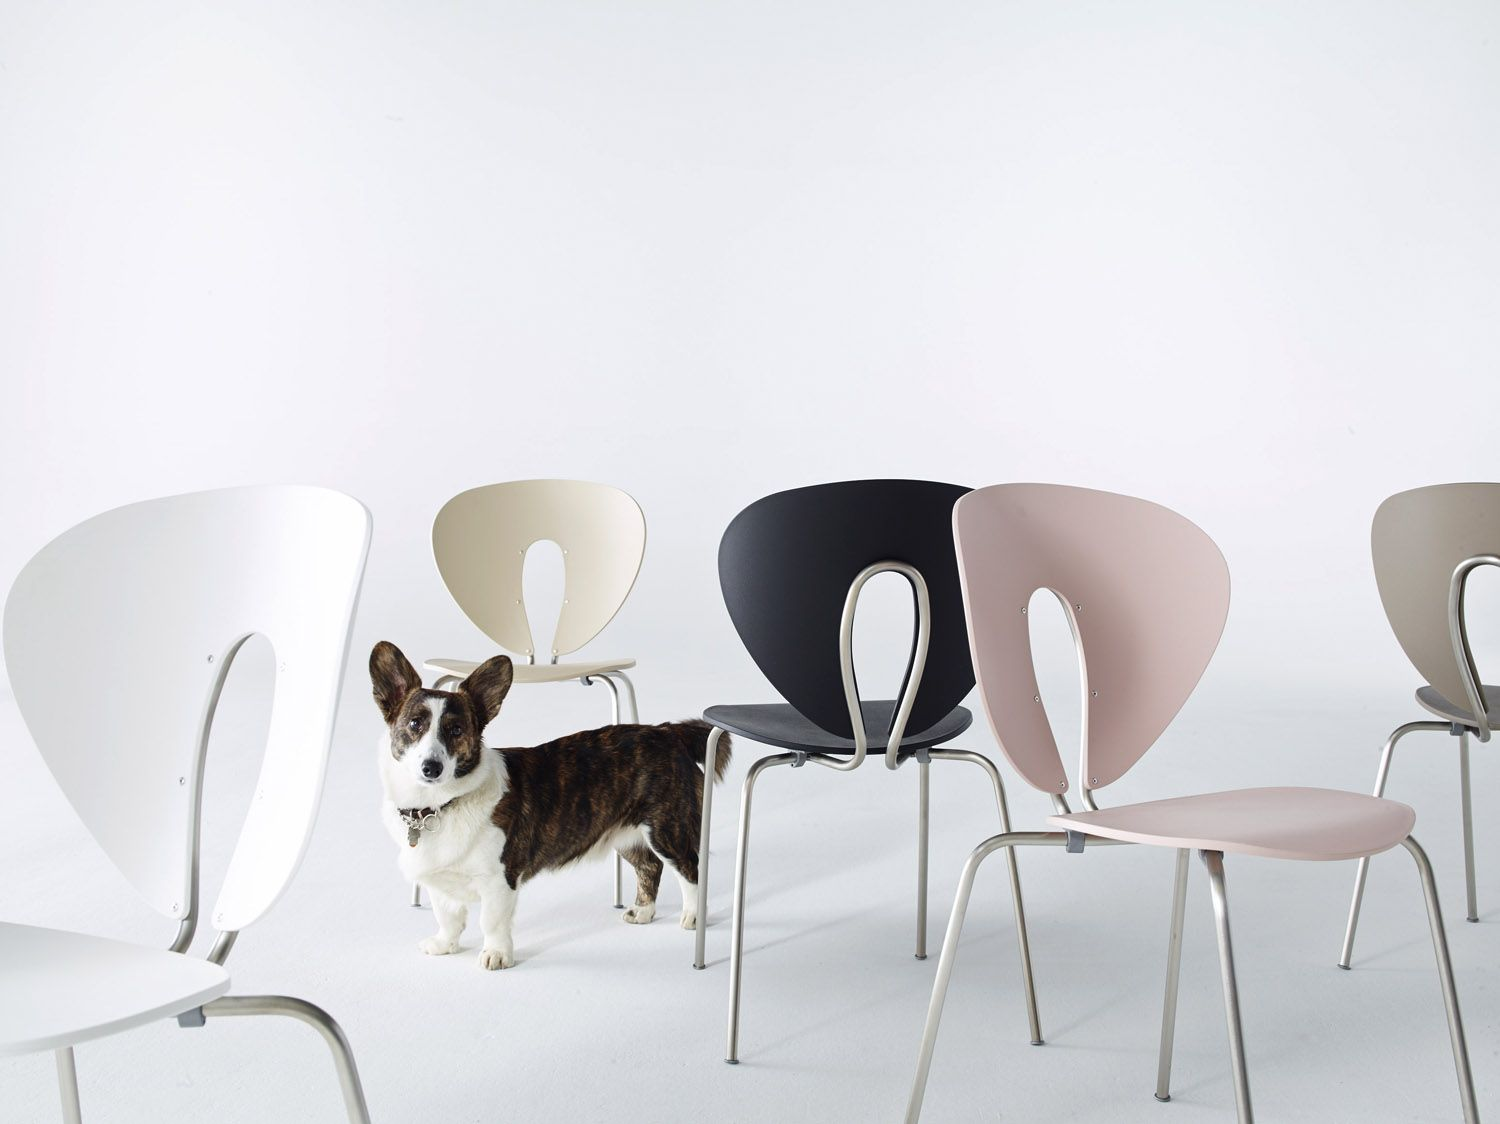 Light design globus chair comfortable and stacking seating